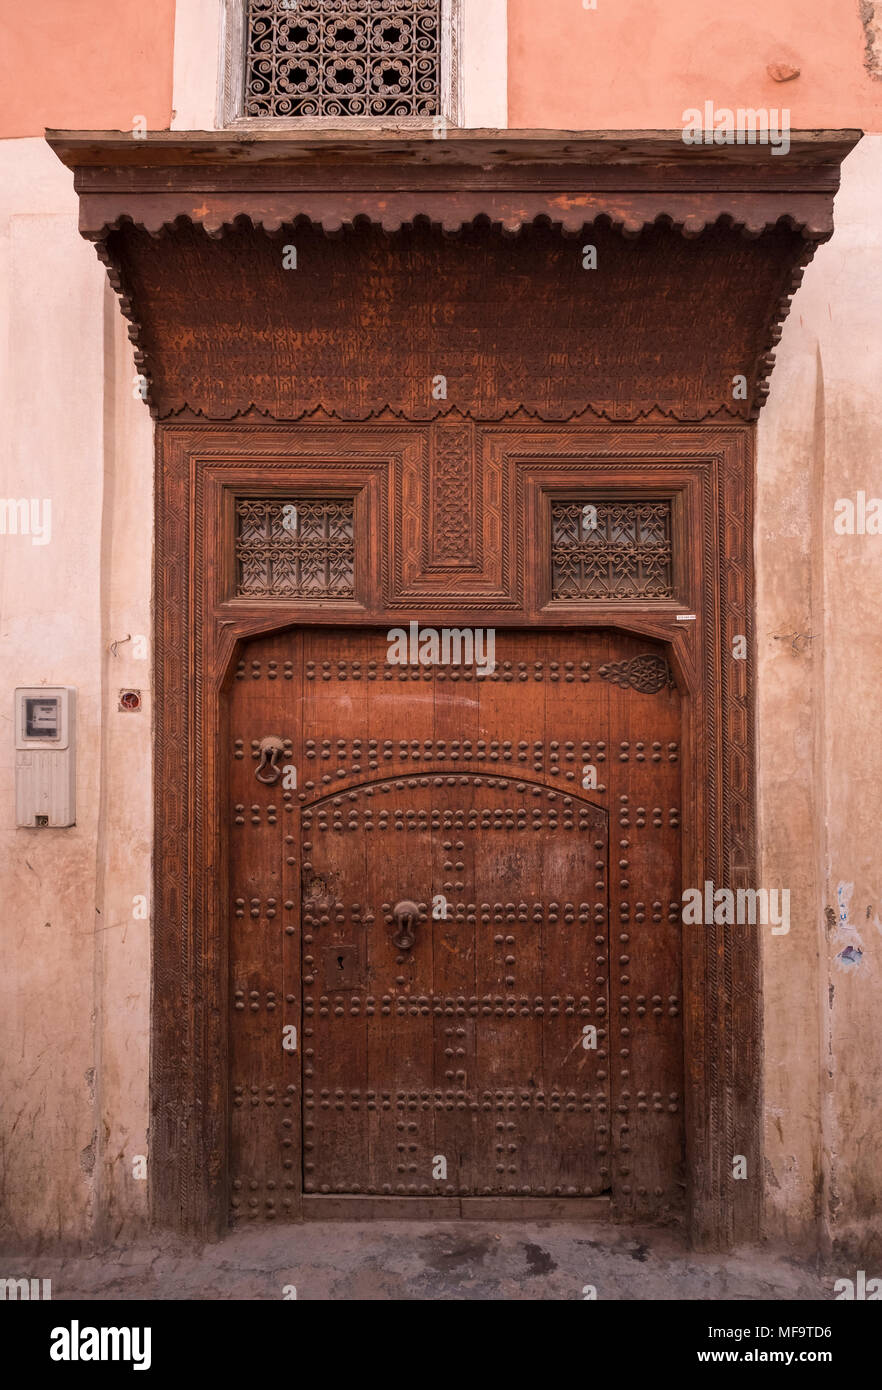 Typical Riad Entrance Doorway in the Backstreets of Marrakech, Marrakech, Morocco - Stock Image